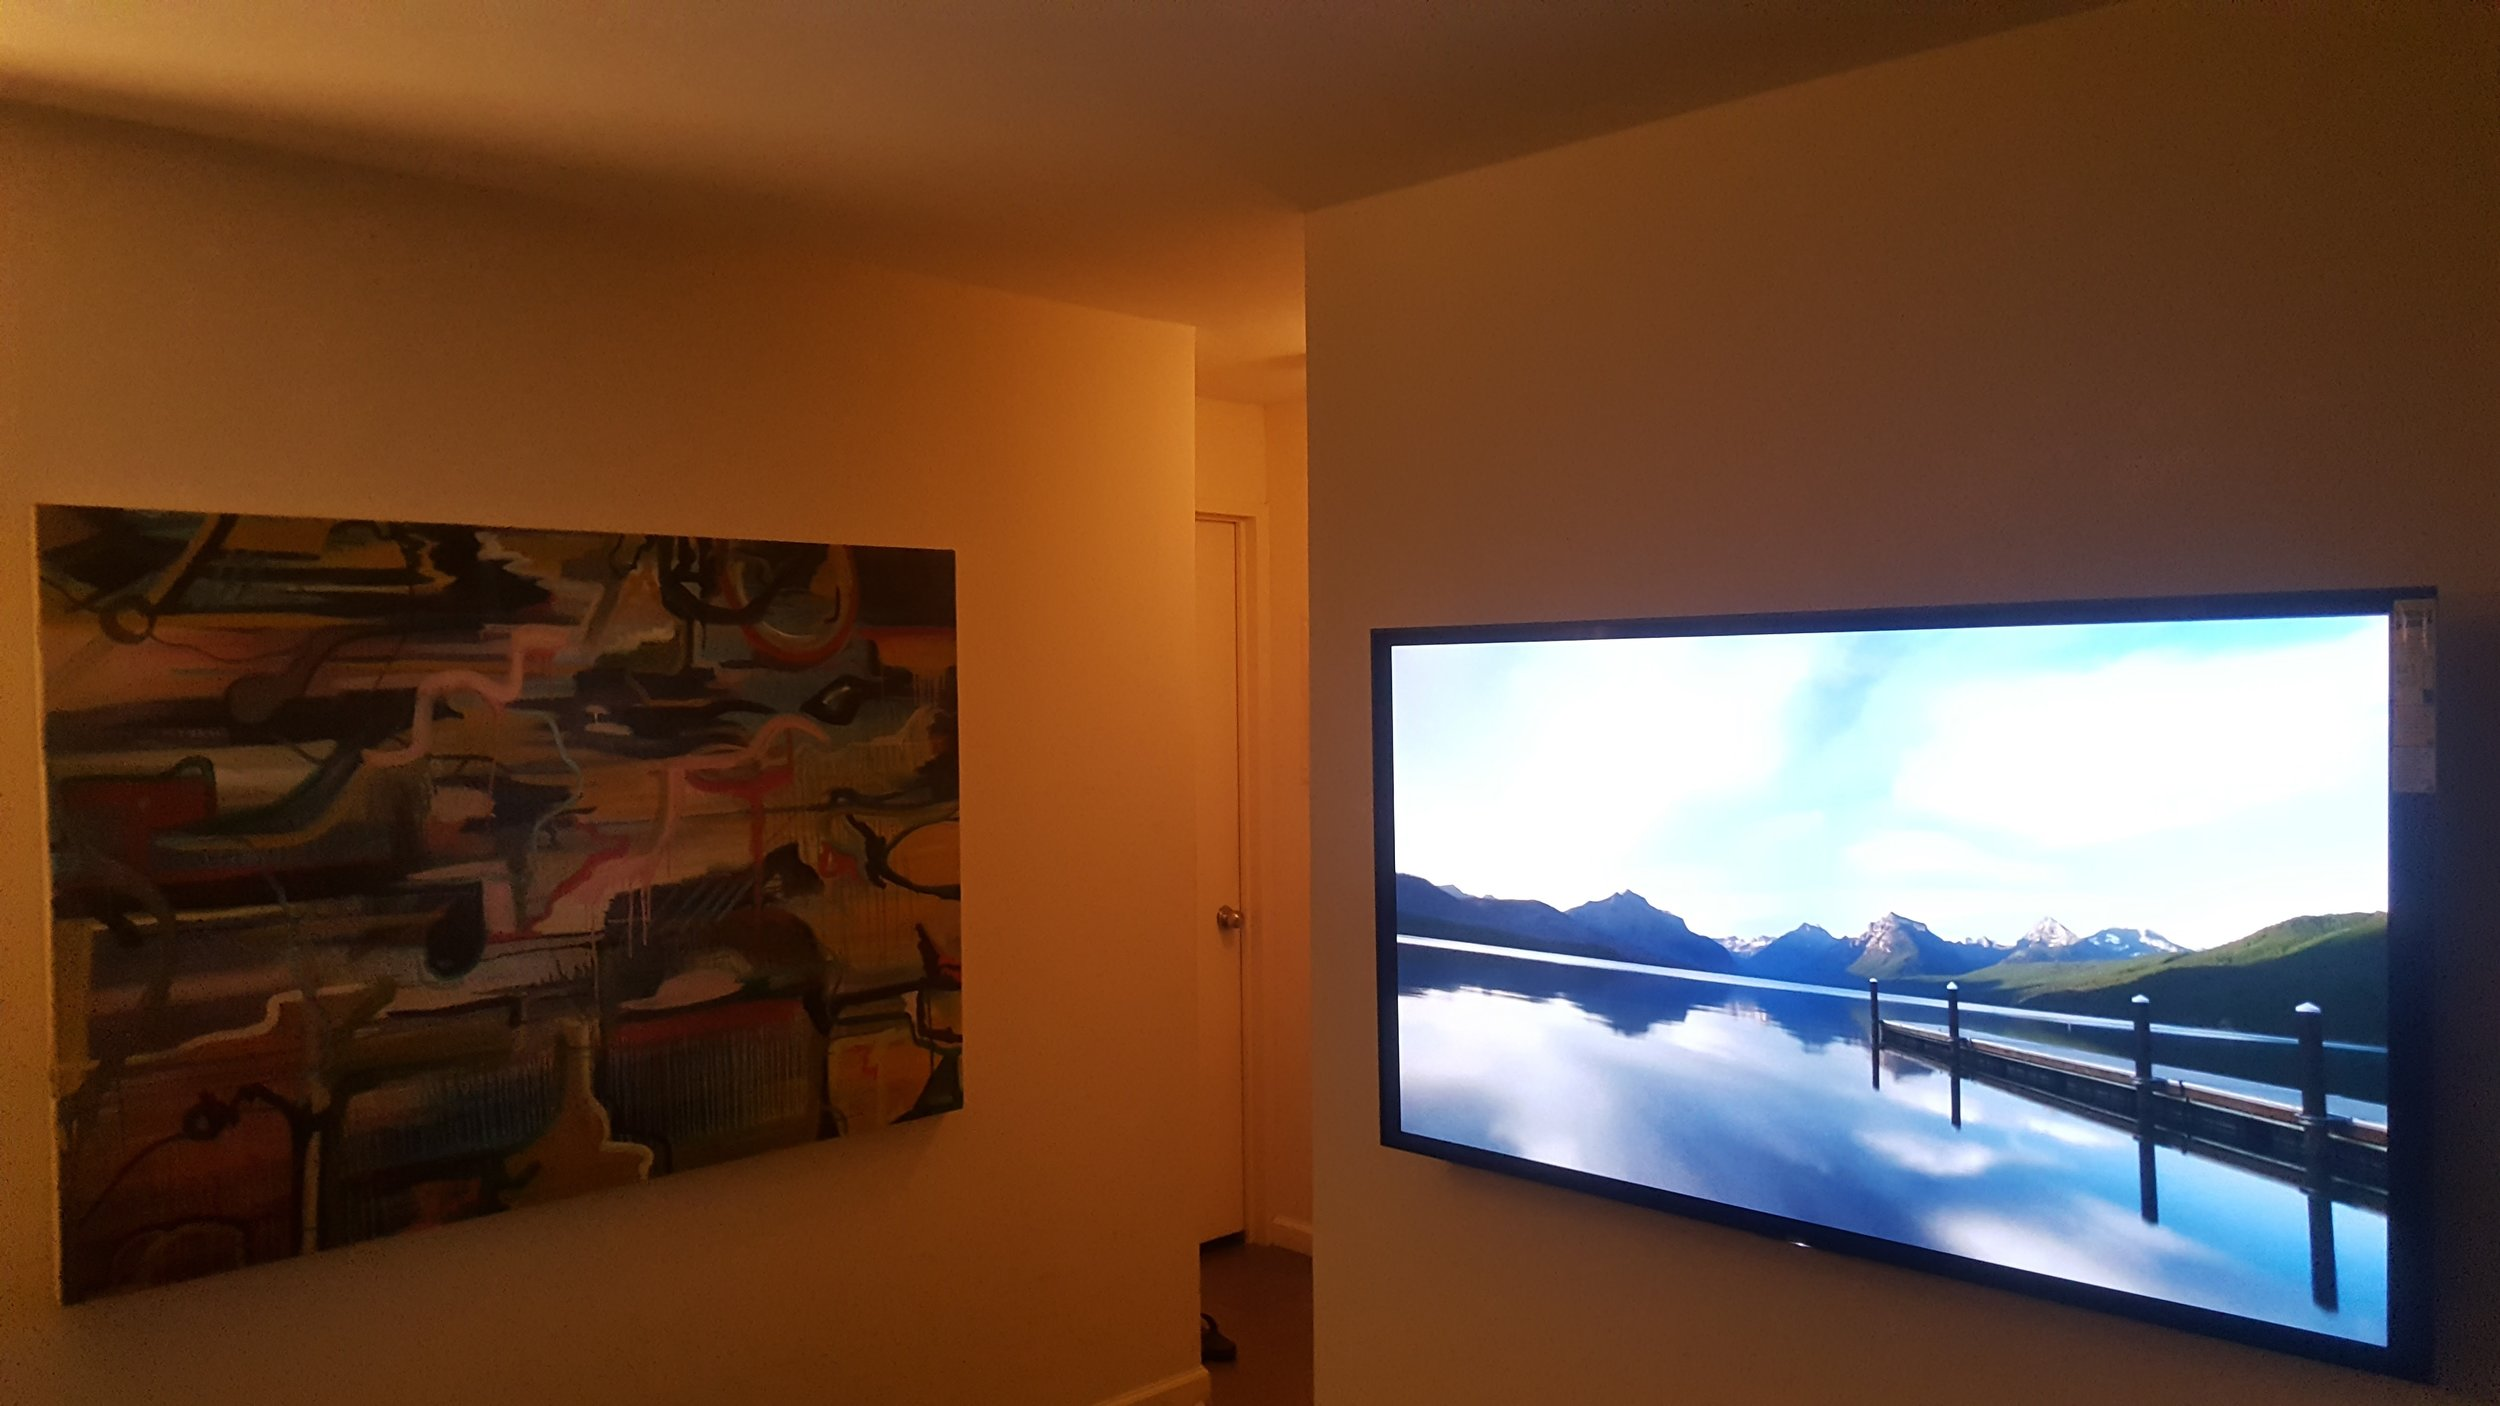 One is a painting & the other is a television, the one you think is the television might just be the painting but they do complement other.  River Place Condo